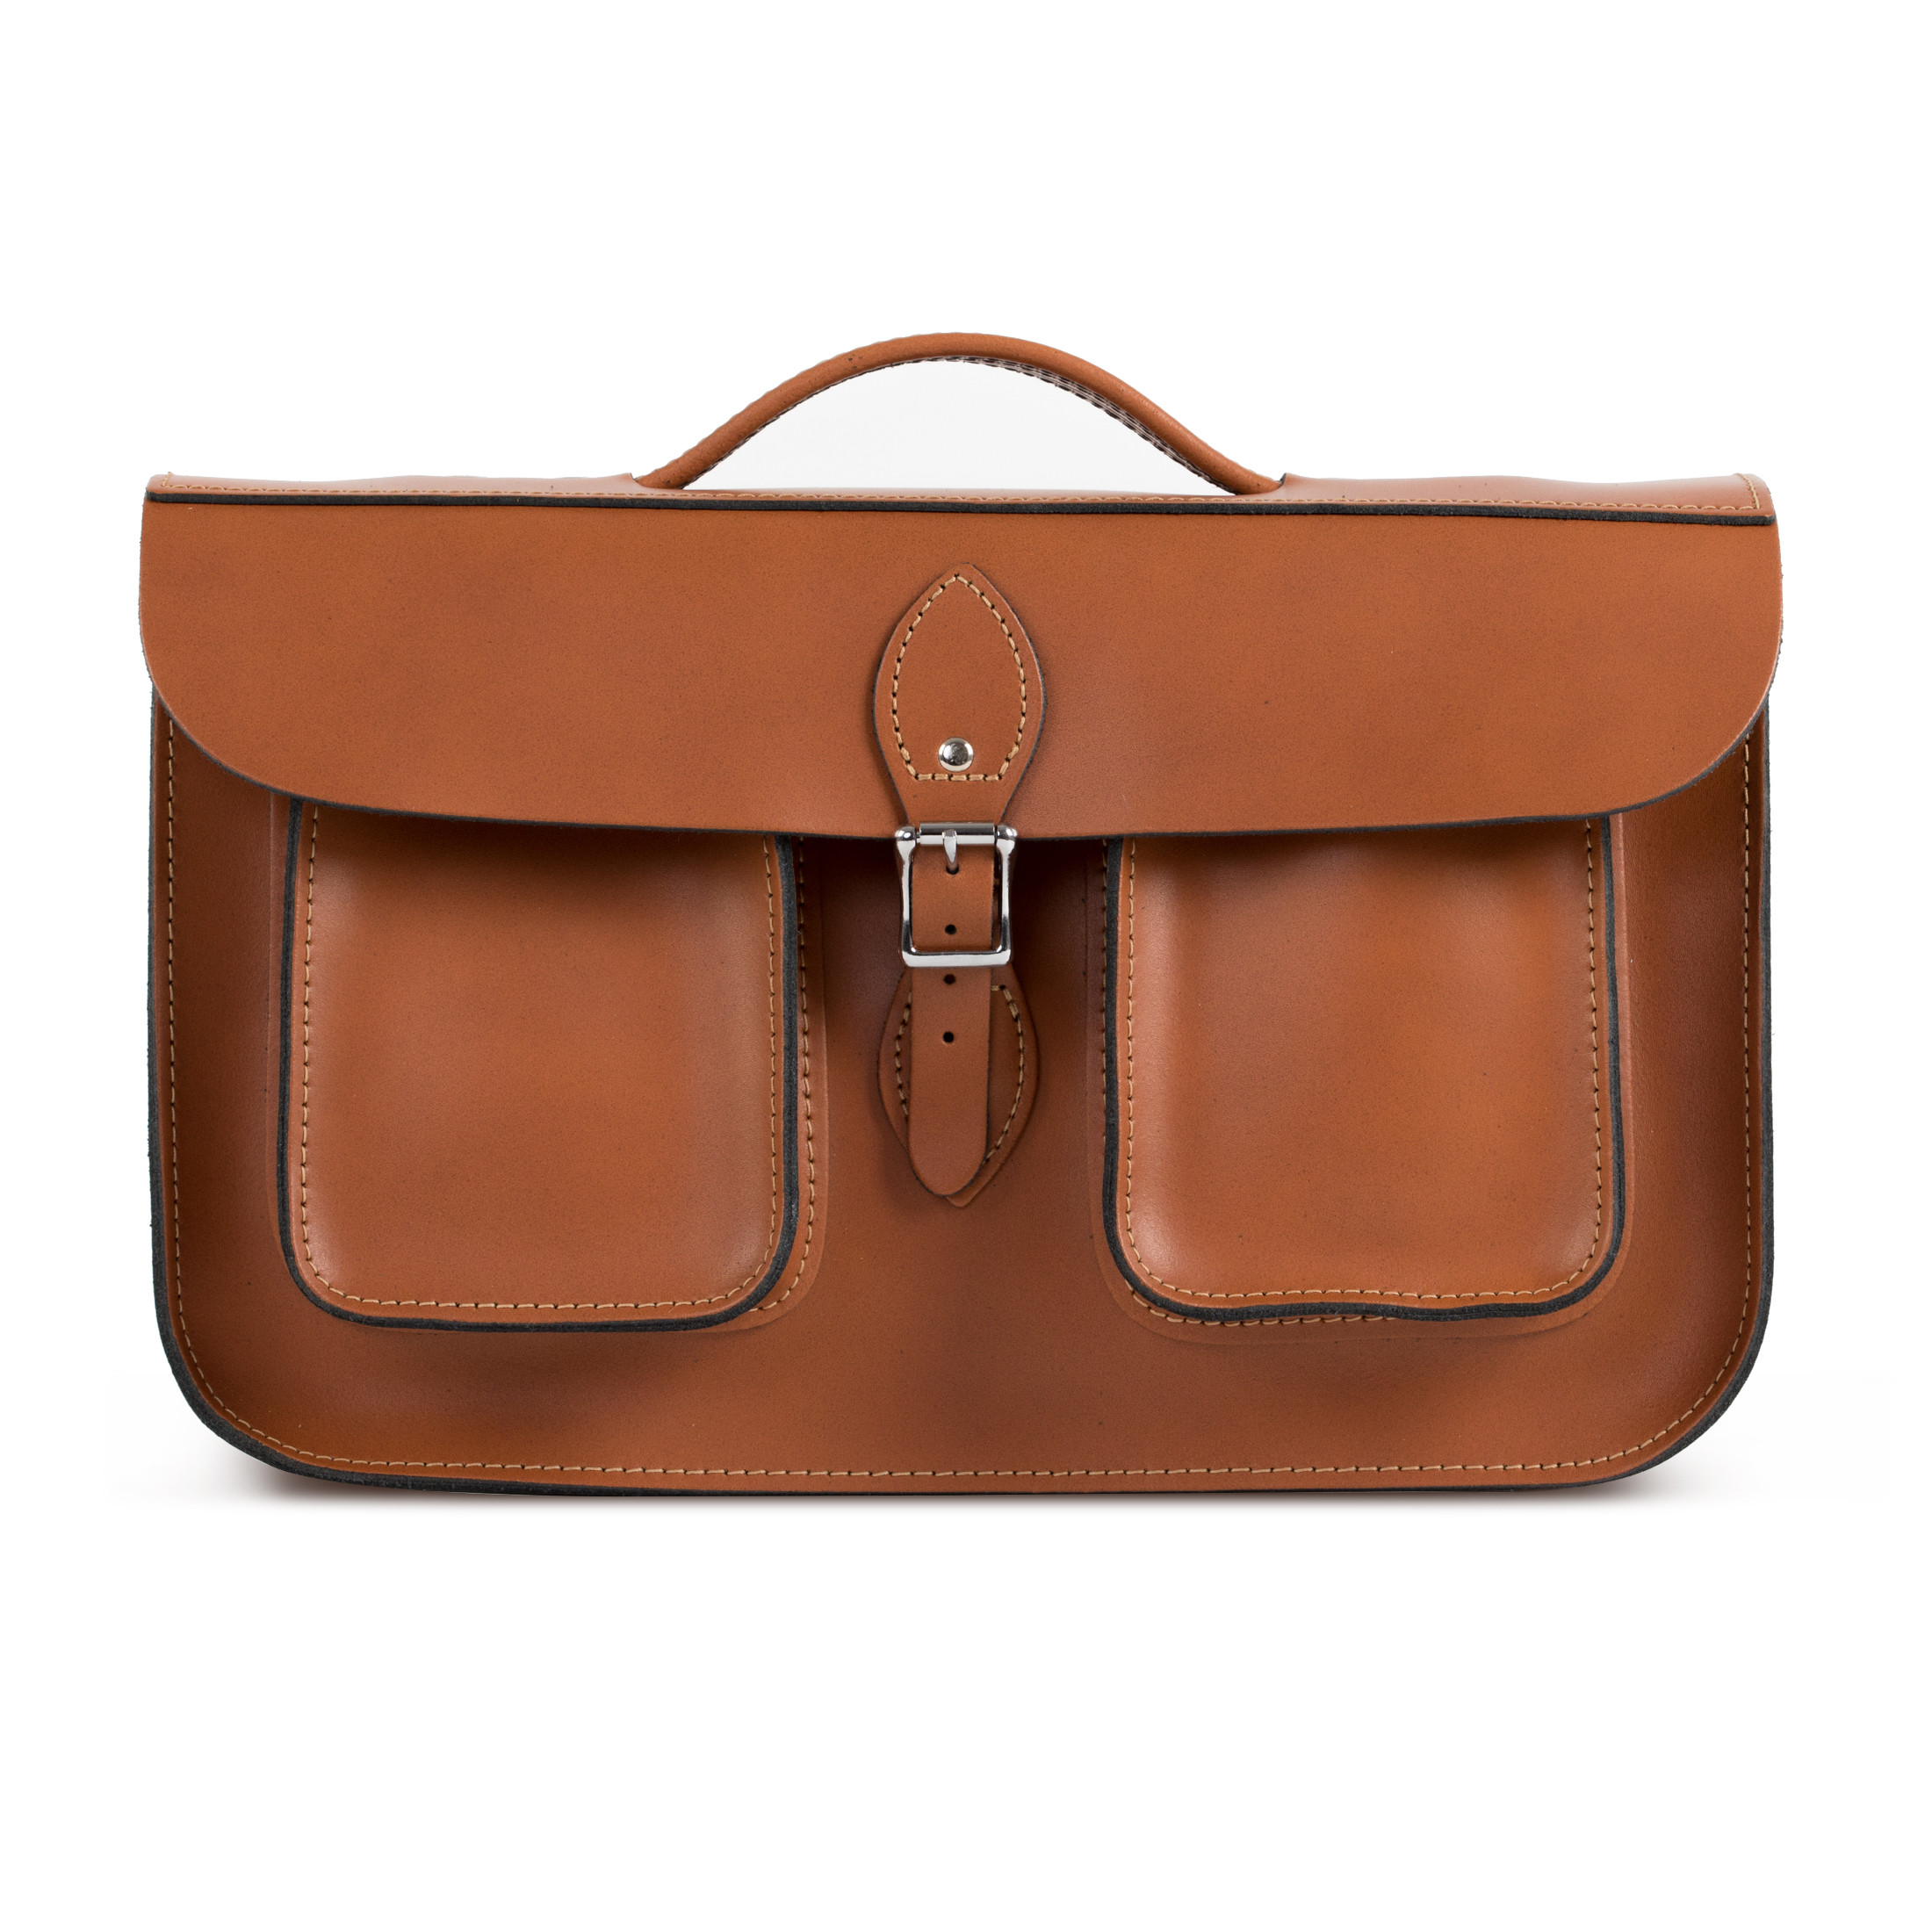 Jude Premium Leather Briefcase in Dark Tan